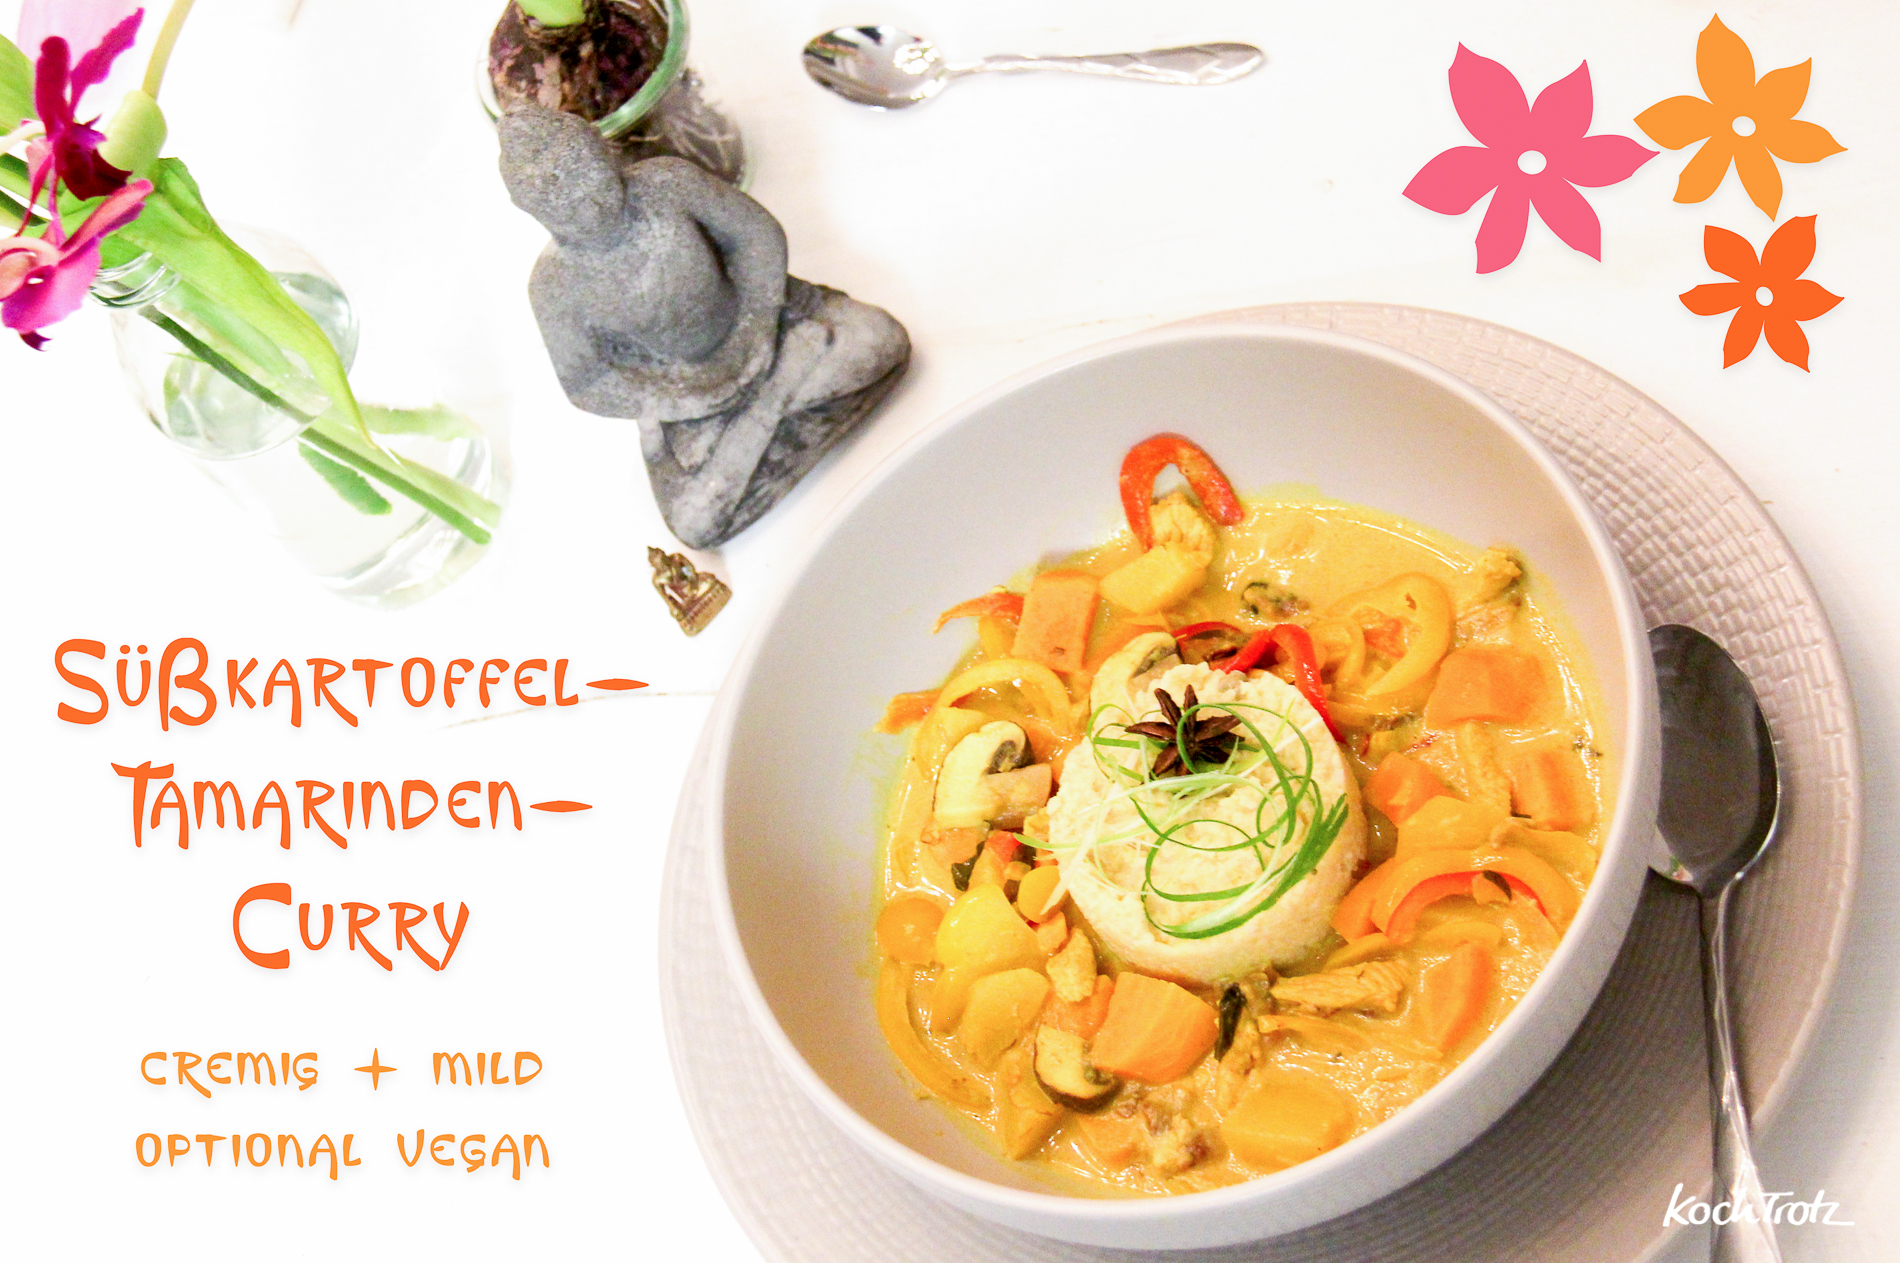 suesskartoffel-tamarinden-curry-optional-vegan-1